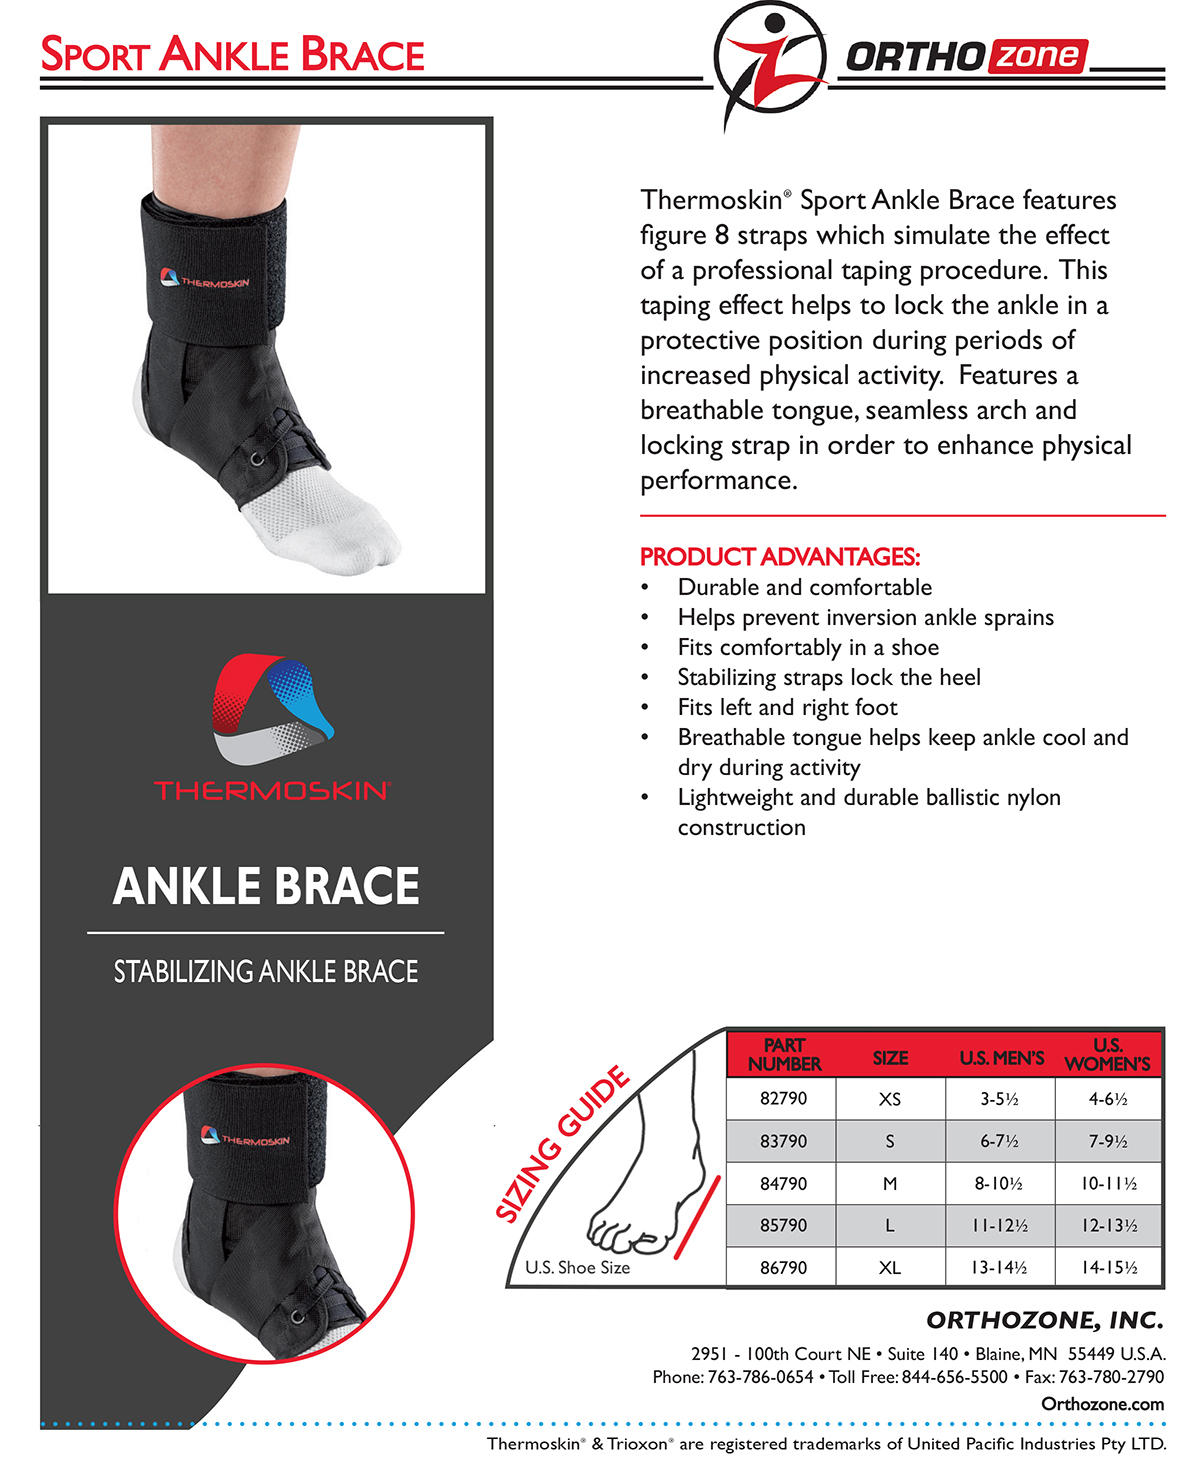 Thermoskin Sport Ankle Brace, Black. $24.95 alternative product image 2